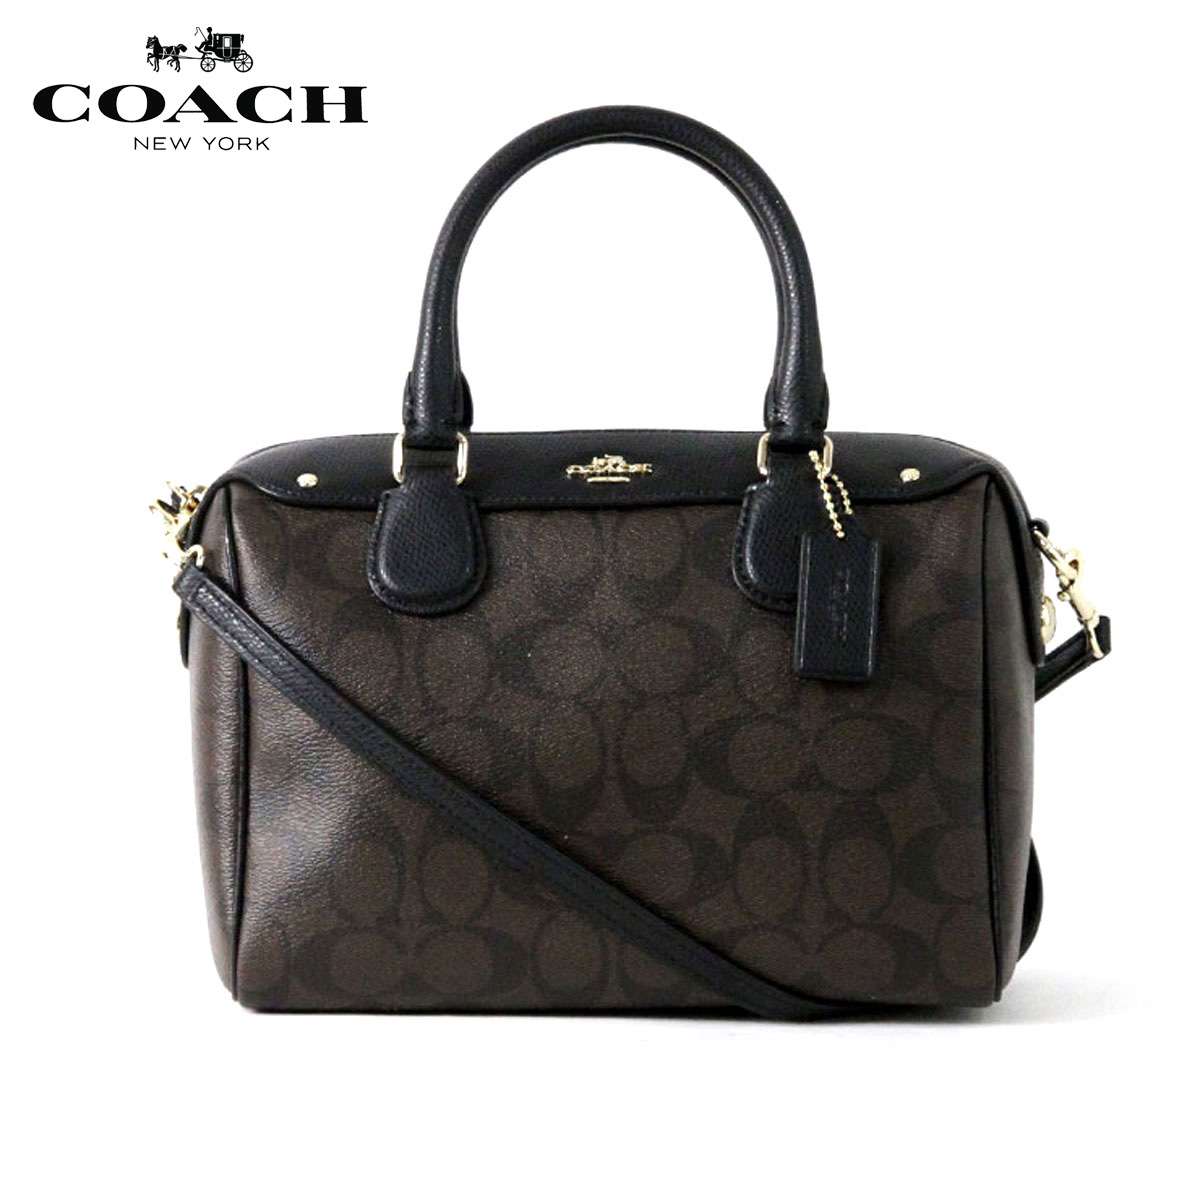 ffed64844b5 Rakuten Ichiba shop MIXON  Coach COACH genuine ladies bag SATCHEL ...